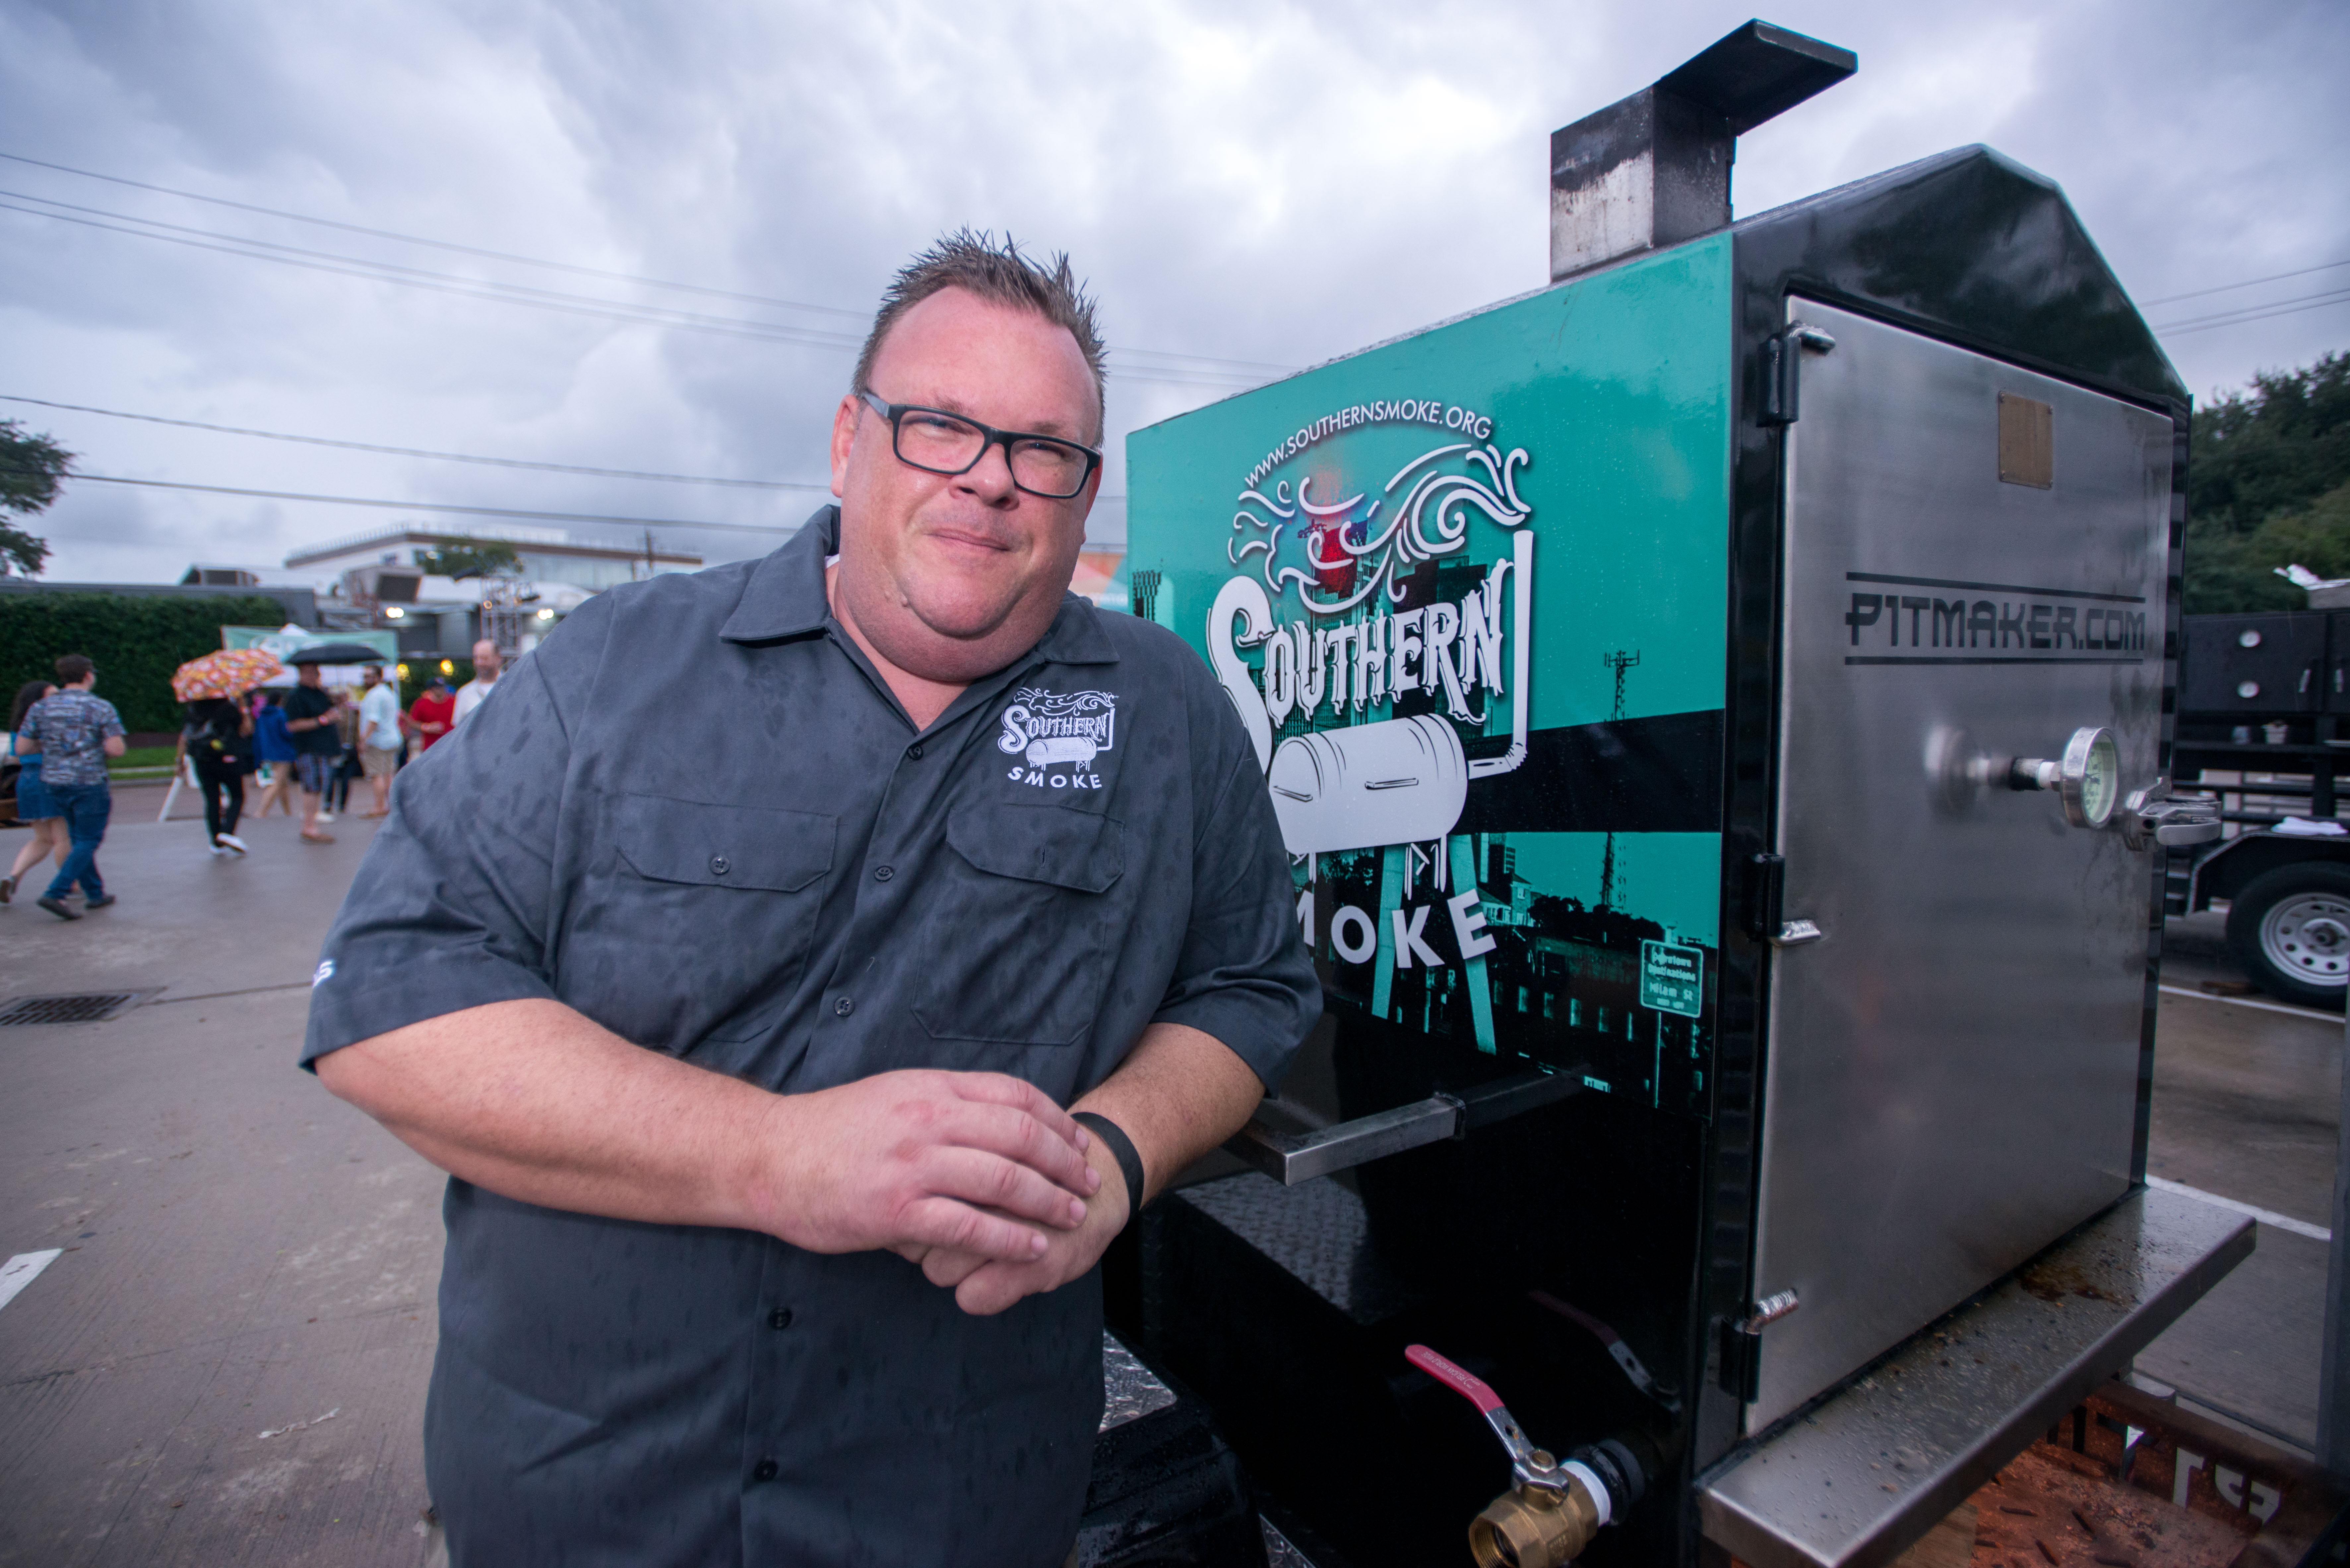 Chef Chris Shepherd founded the Southern Smoke Foundation in 2015